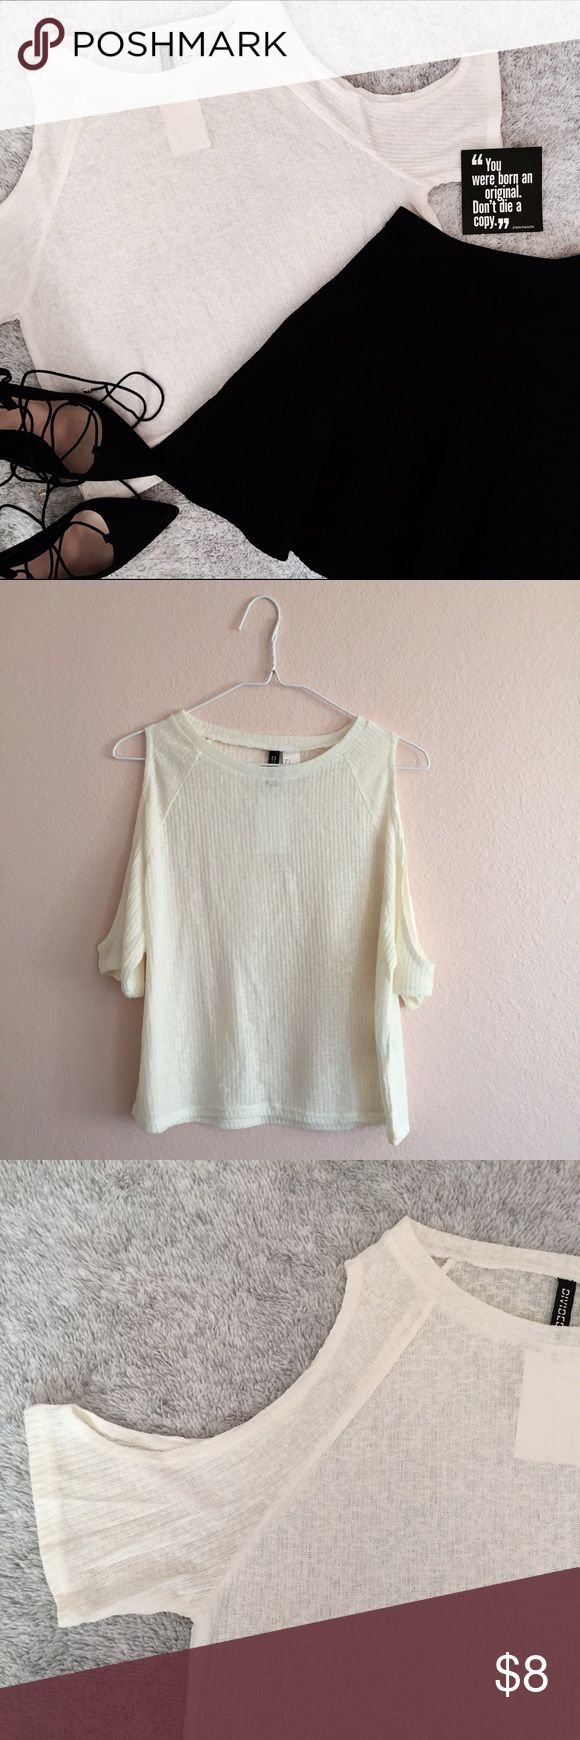 Cream Cold Shoulder Short Sleeve Top | H&M NWOT • Bundle to save on shipping! • H&M Tops Tees - Short Sleeve